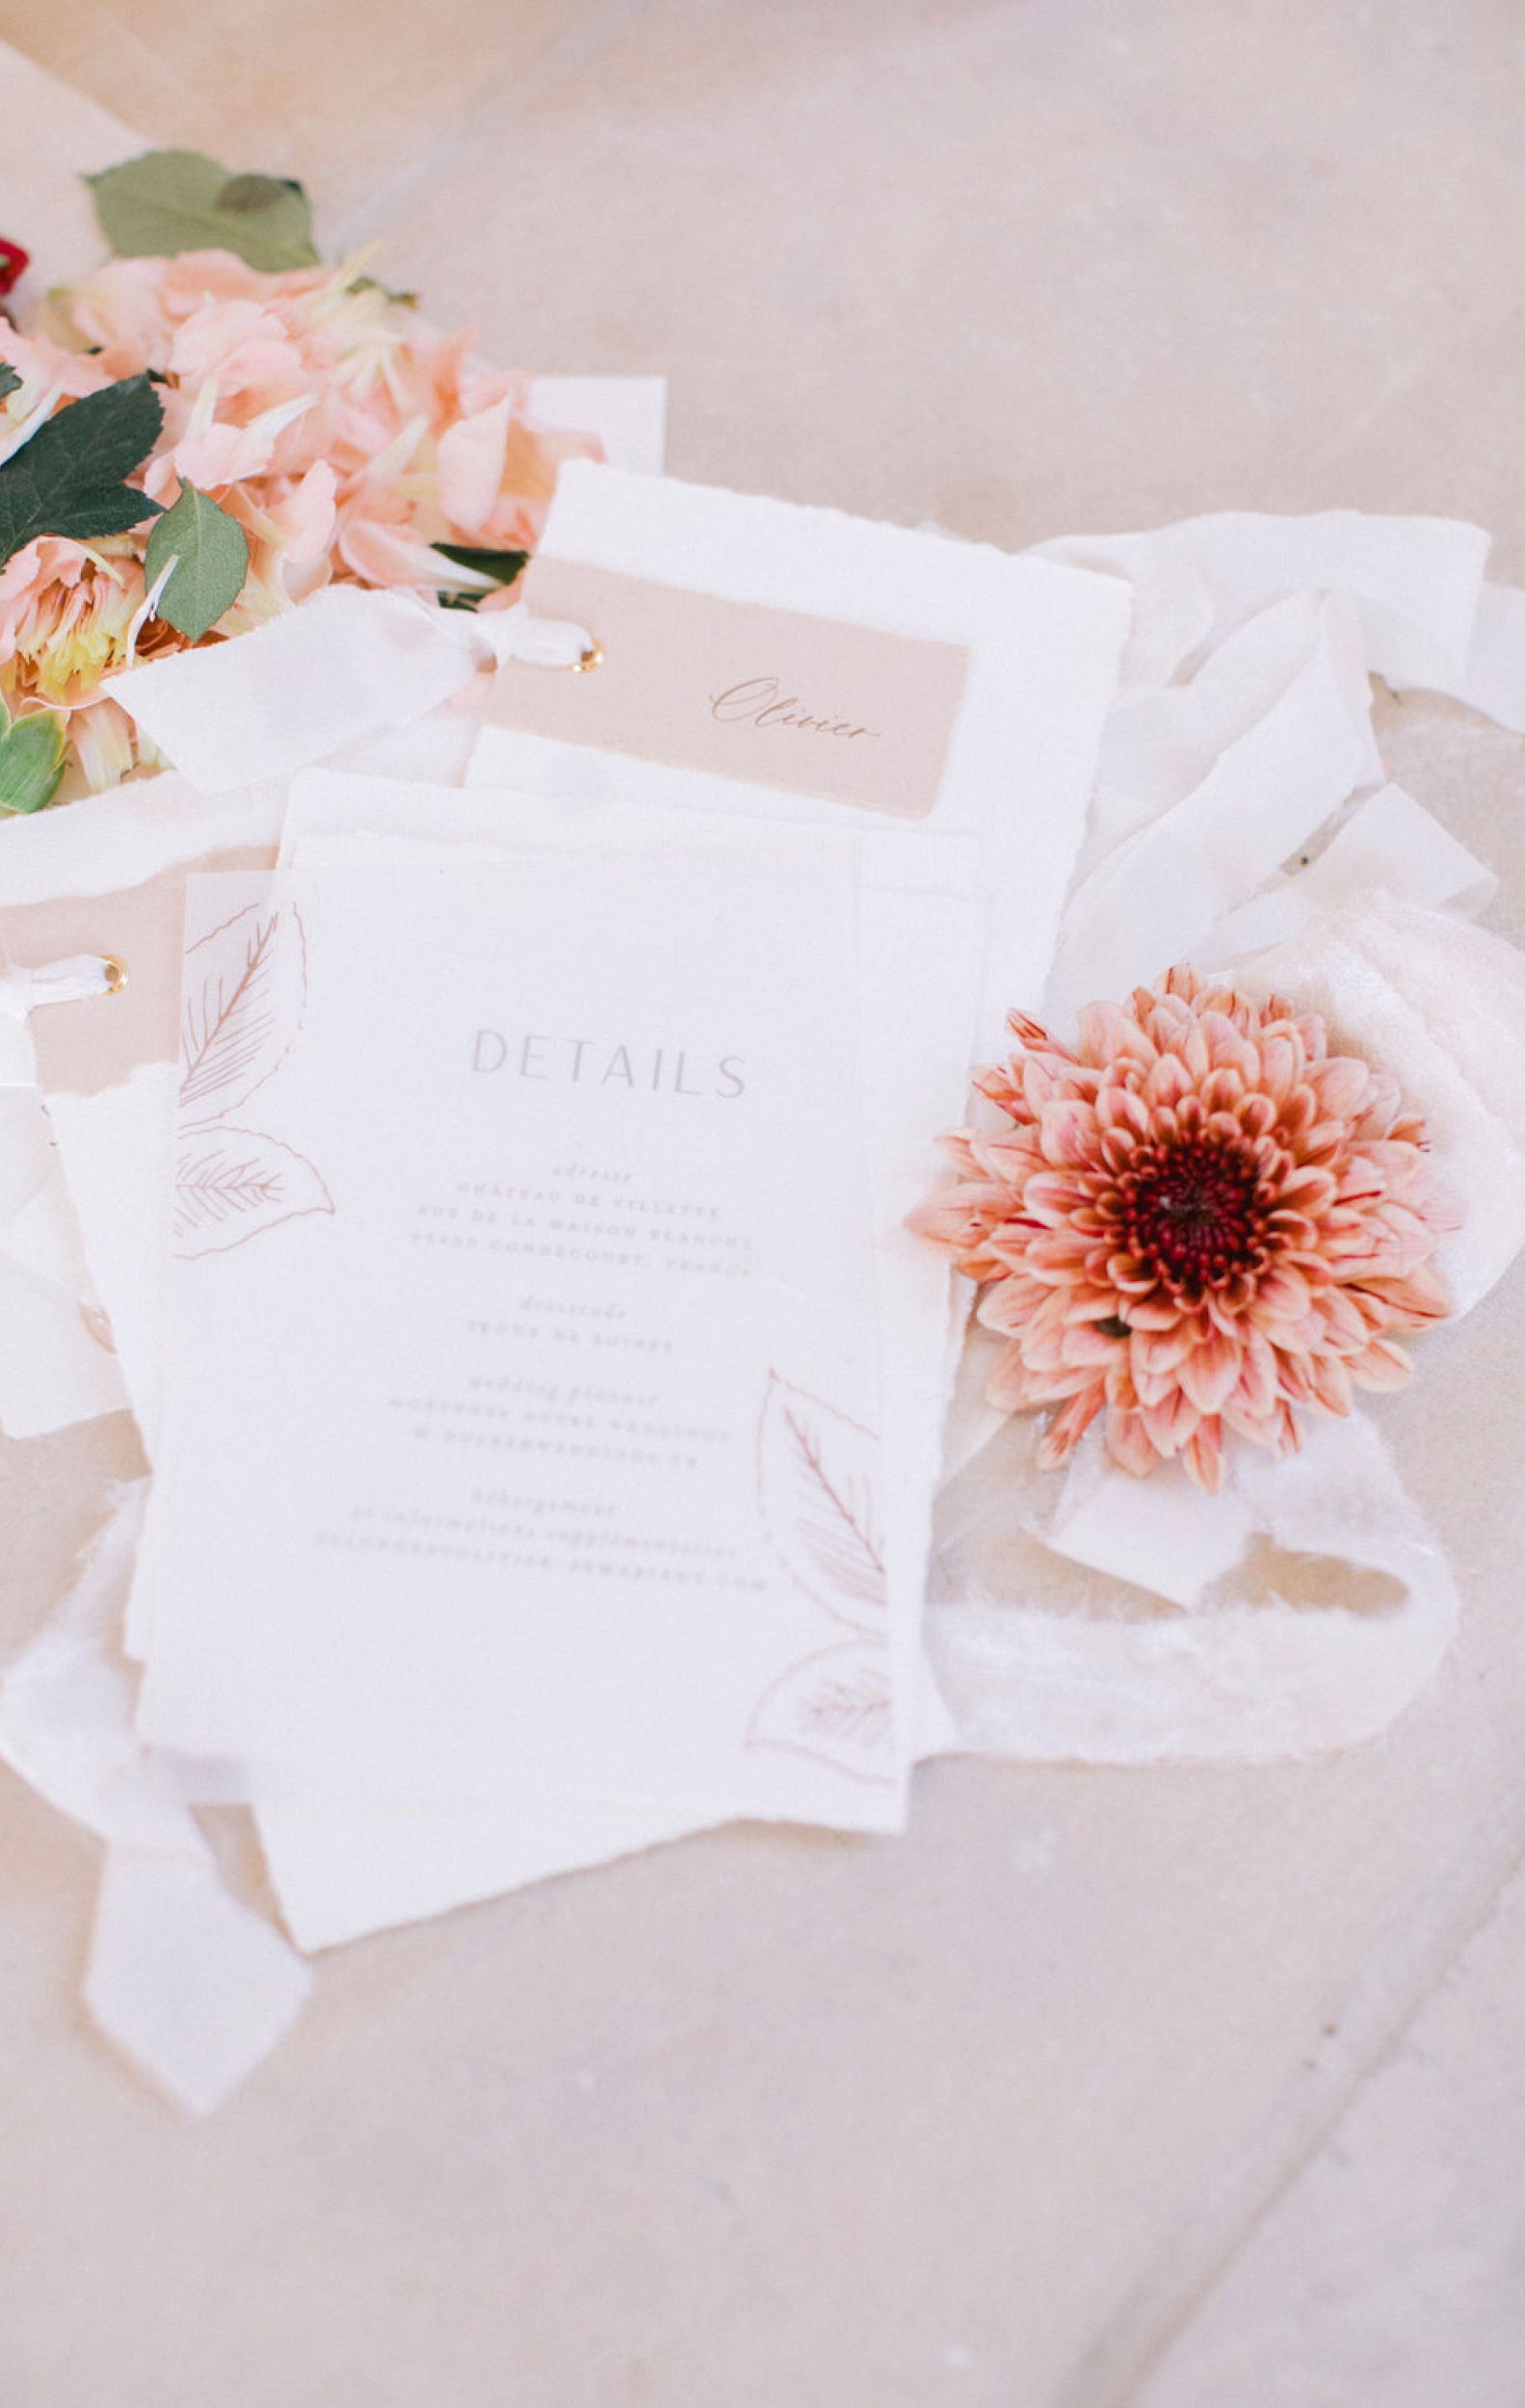 menu cards with guest names chateau de villette